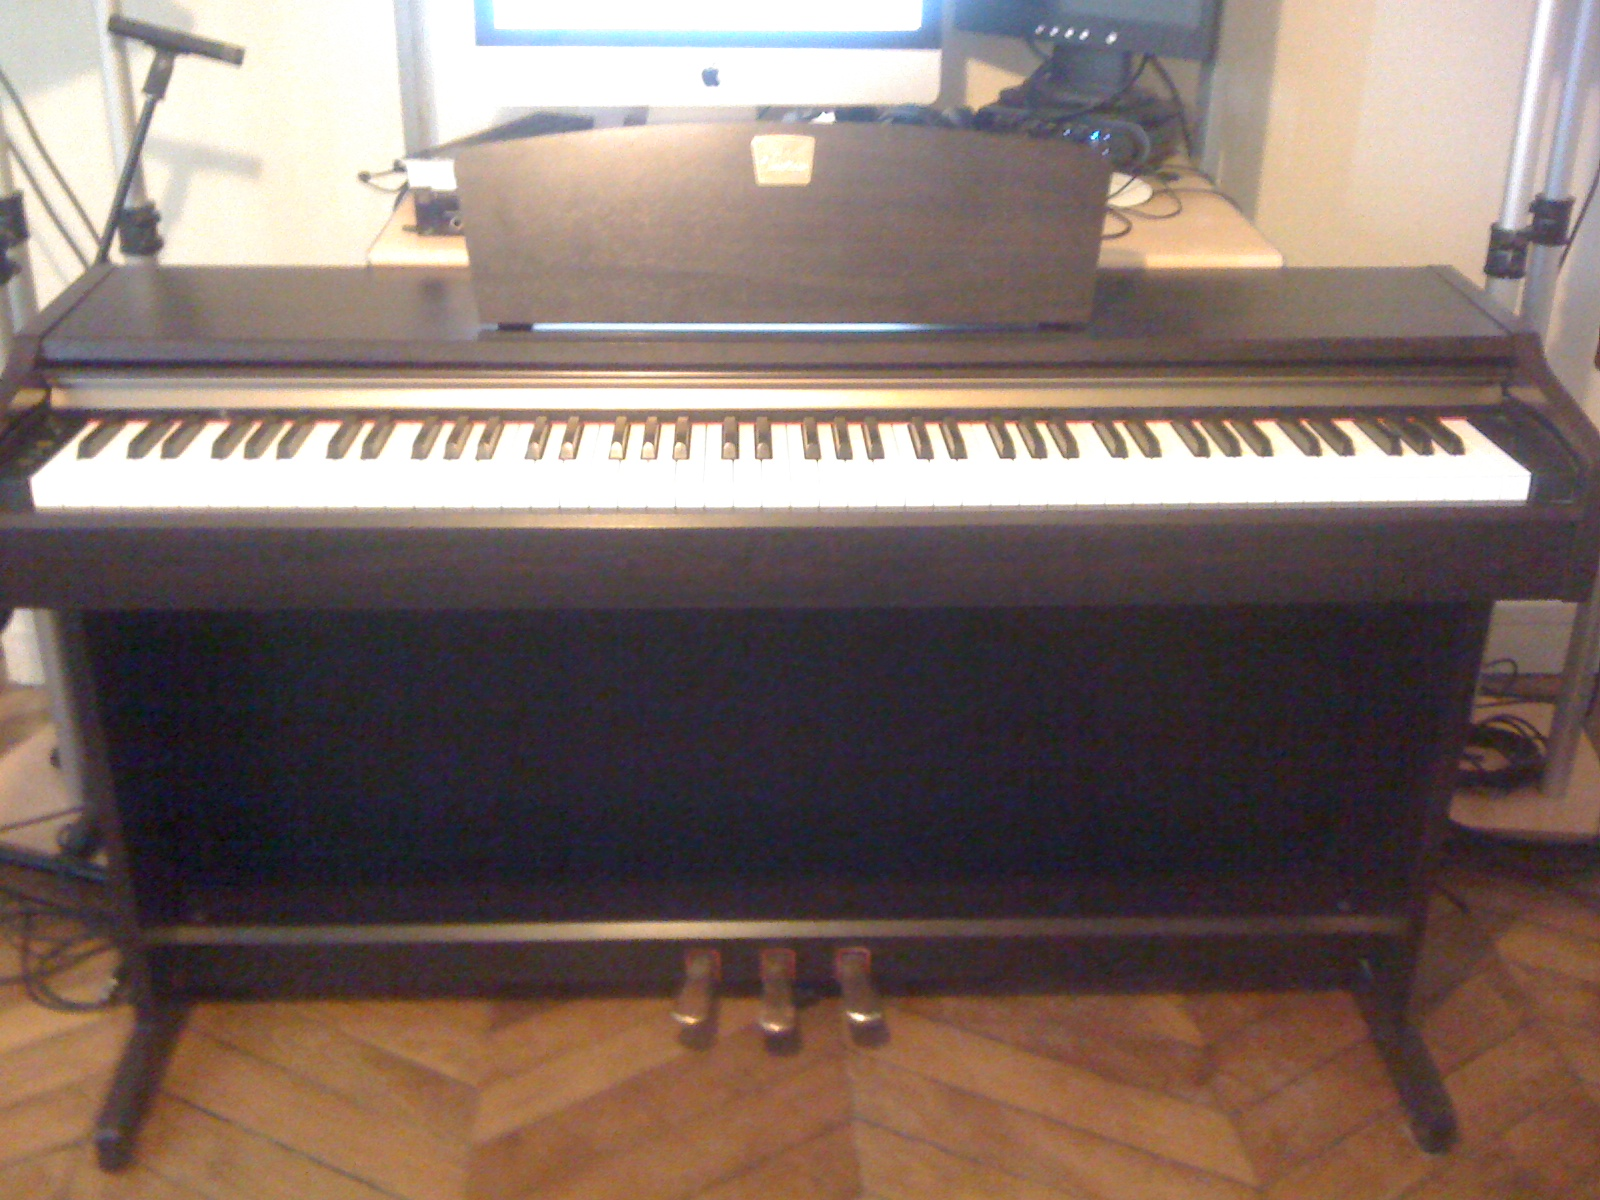 Yamaha clp 115 image 389225 audiofanzine for Yamaha clavinova price list